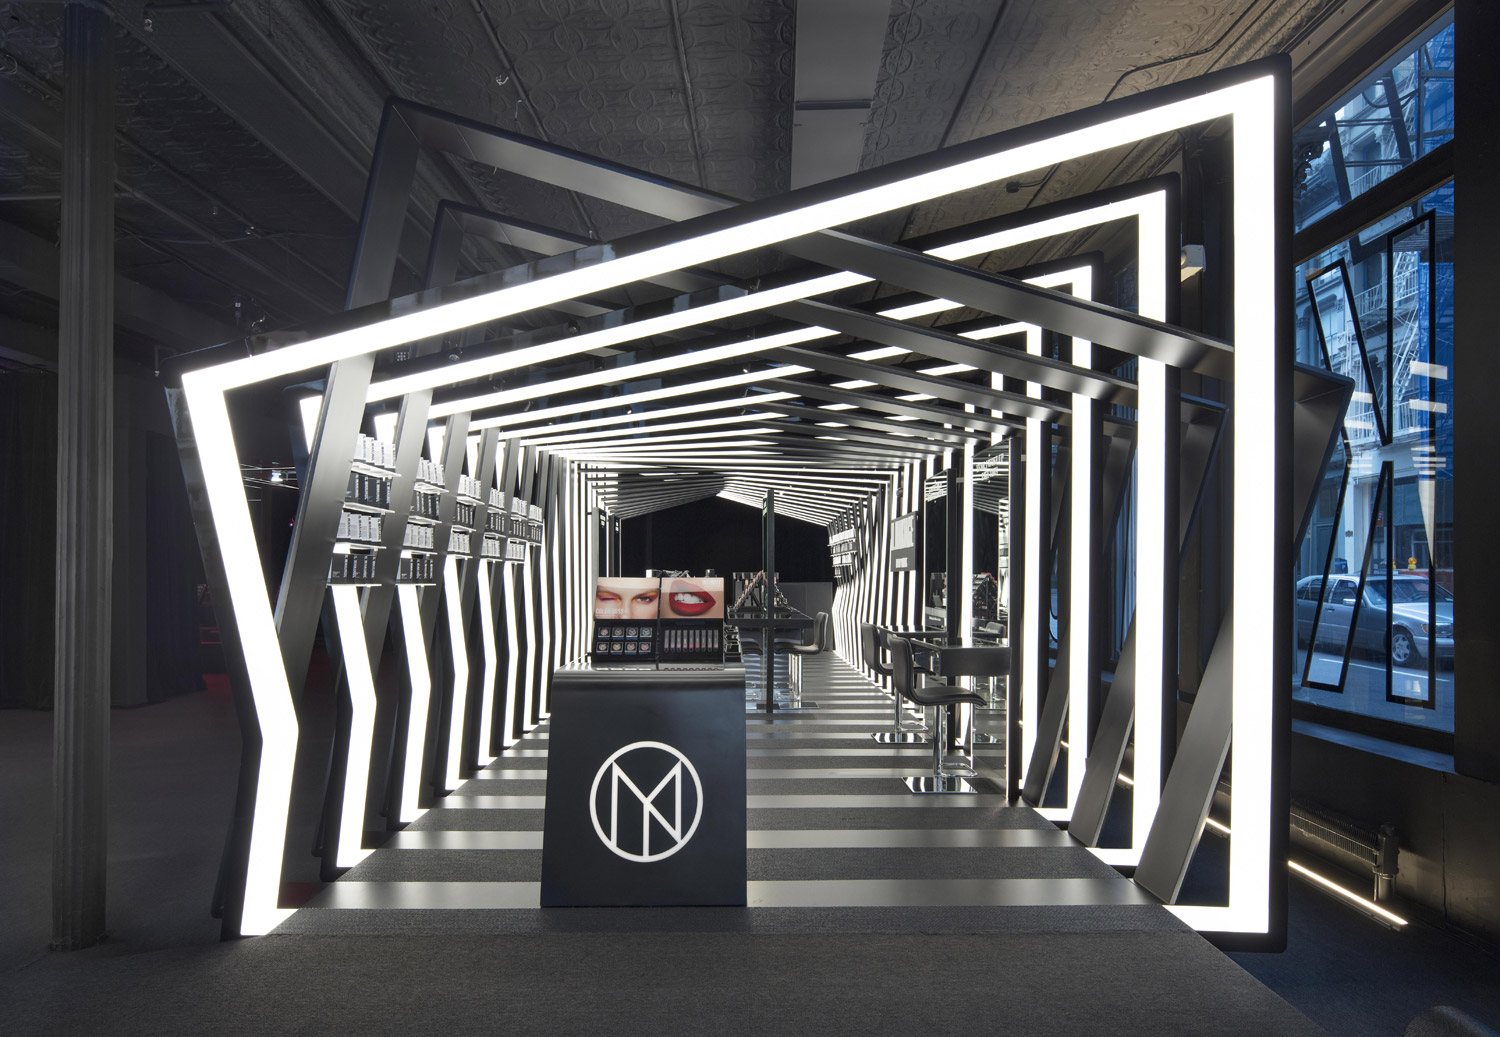 Distinctive Packaging Inspires Zaha Hadid Architects' Retail Design Concept